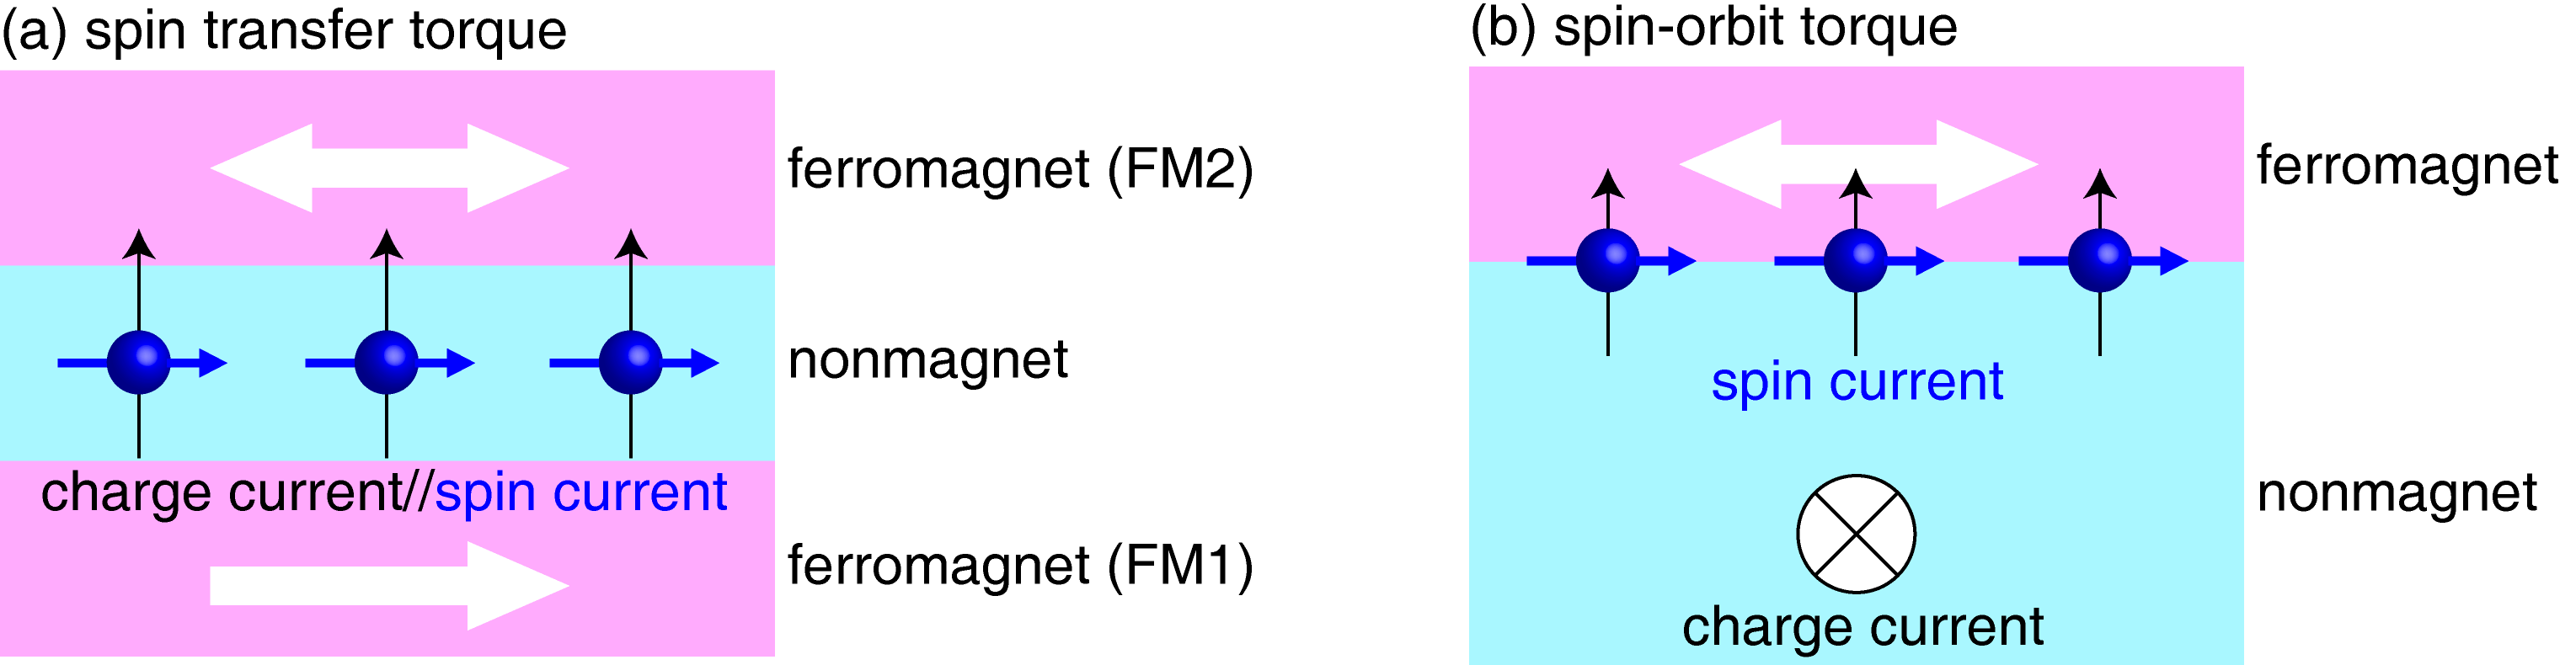 Figure 1. Schematics of (a) spin transfer torque in the ferromagnet (FM1)/nonmagnet/ferromagnet (FM2) multilayer and (b) spin-orbit torque in the nonmagnet/ferromagnet bilayer. The white arrows in each ferromagnet indicate magnetization direction and blue arrows represent spin angular momentum direction of the spin current.